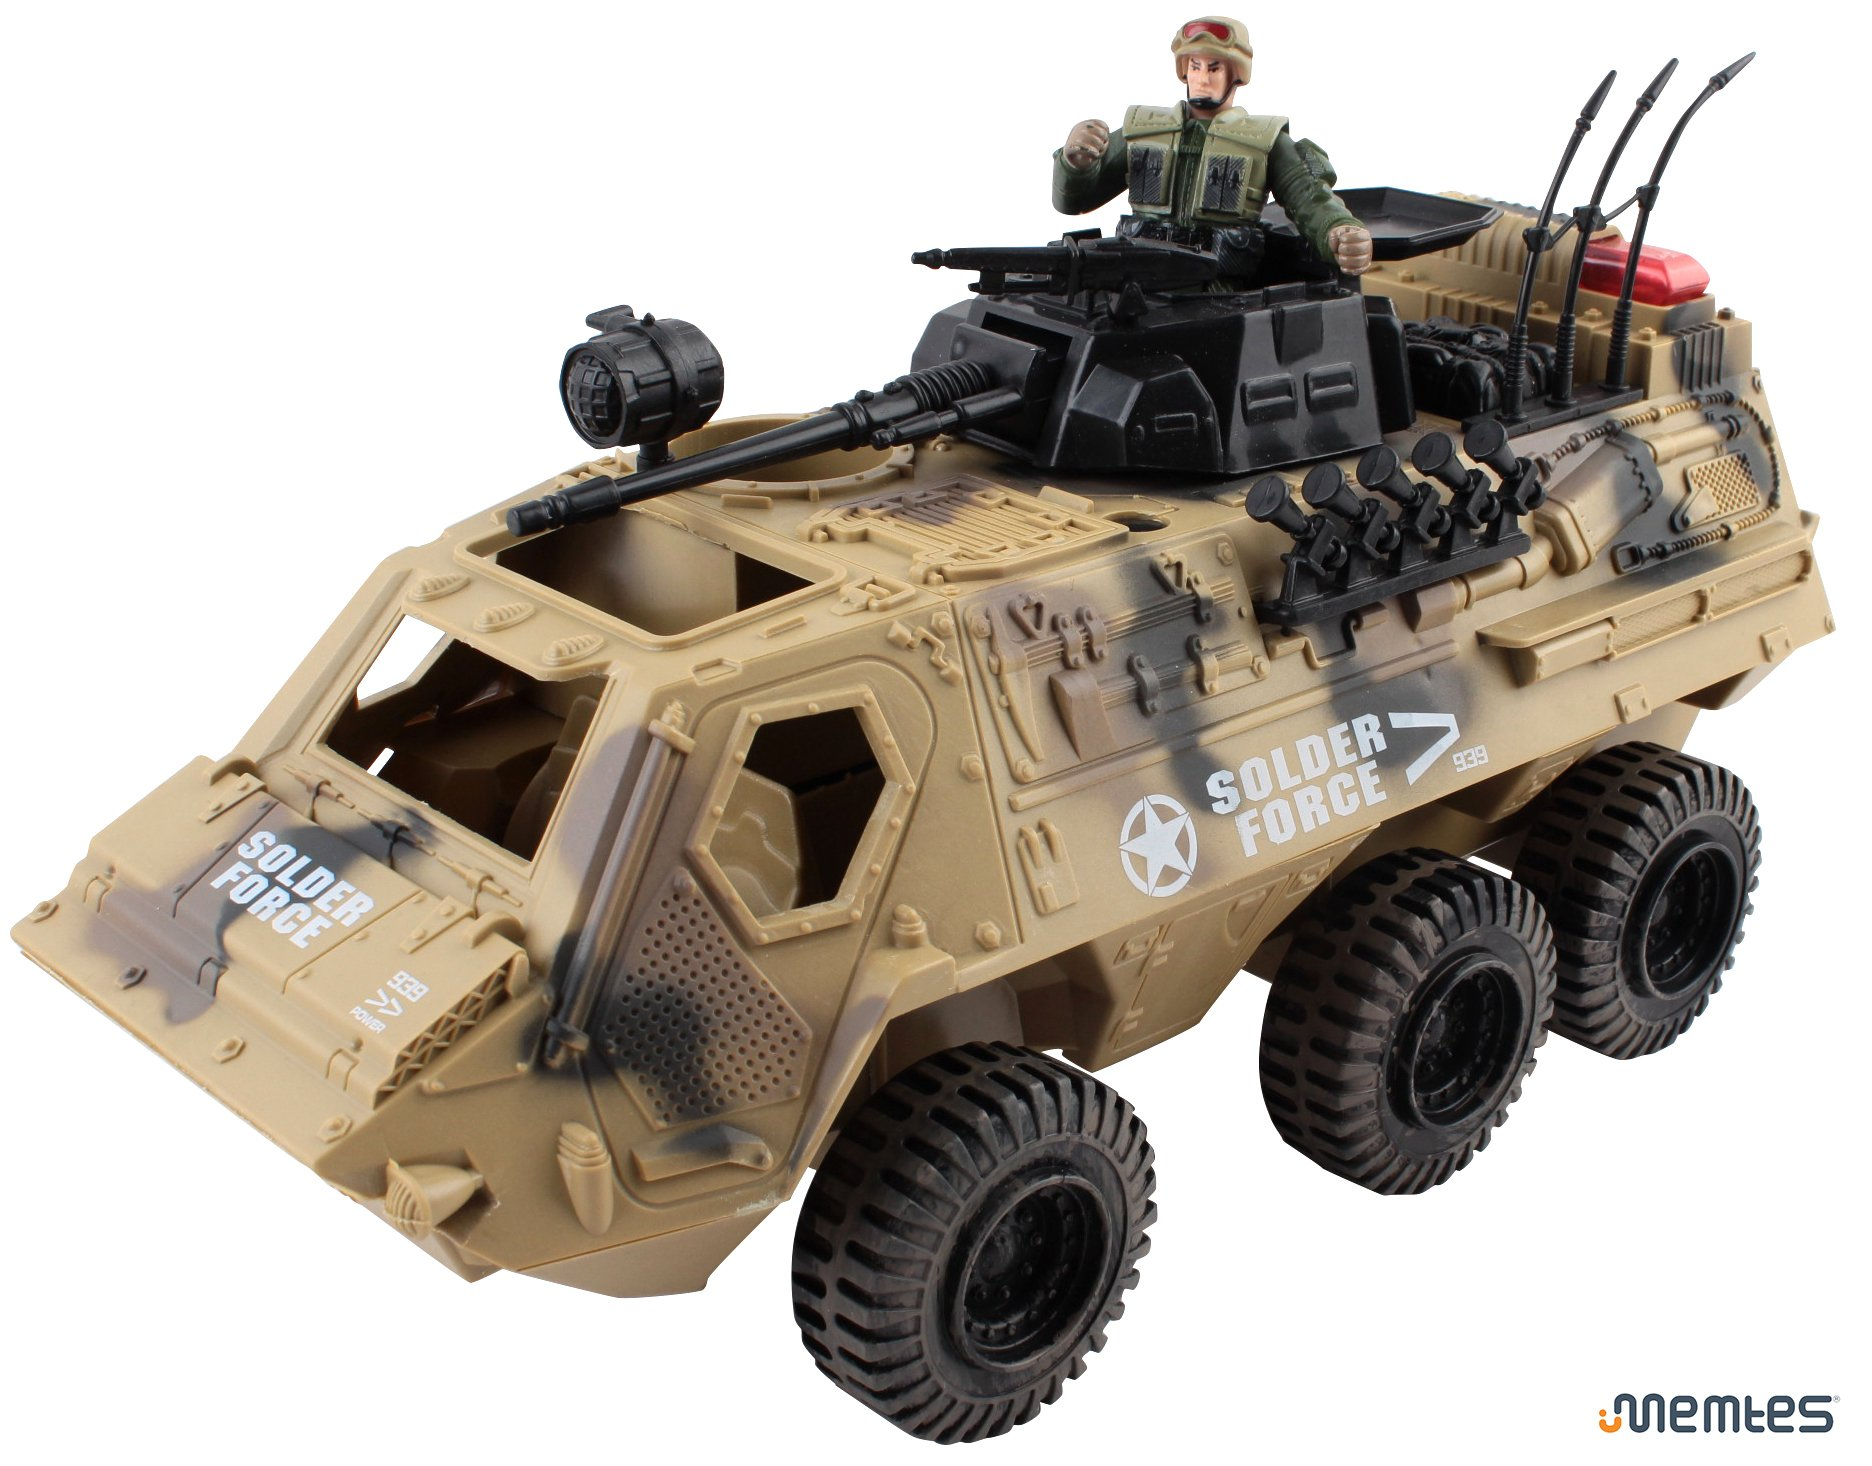 Memtes Military Fighter Army Truck Tank Toy with Mini Army Soldier with Lights and Sound by Memtes (Image #3)